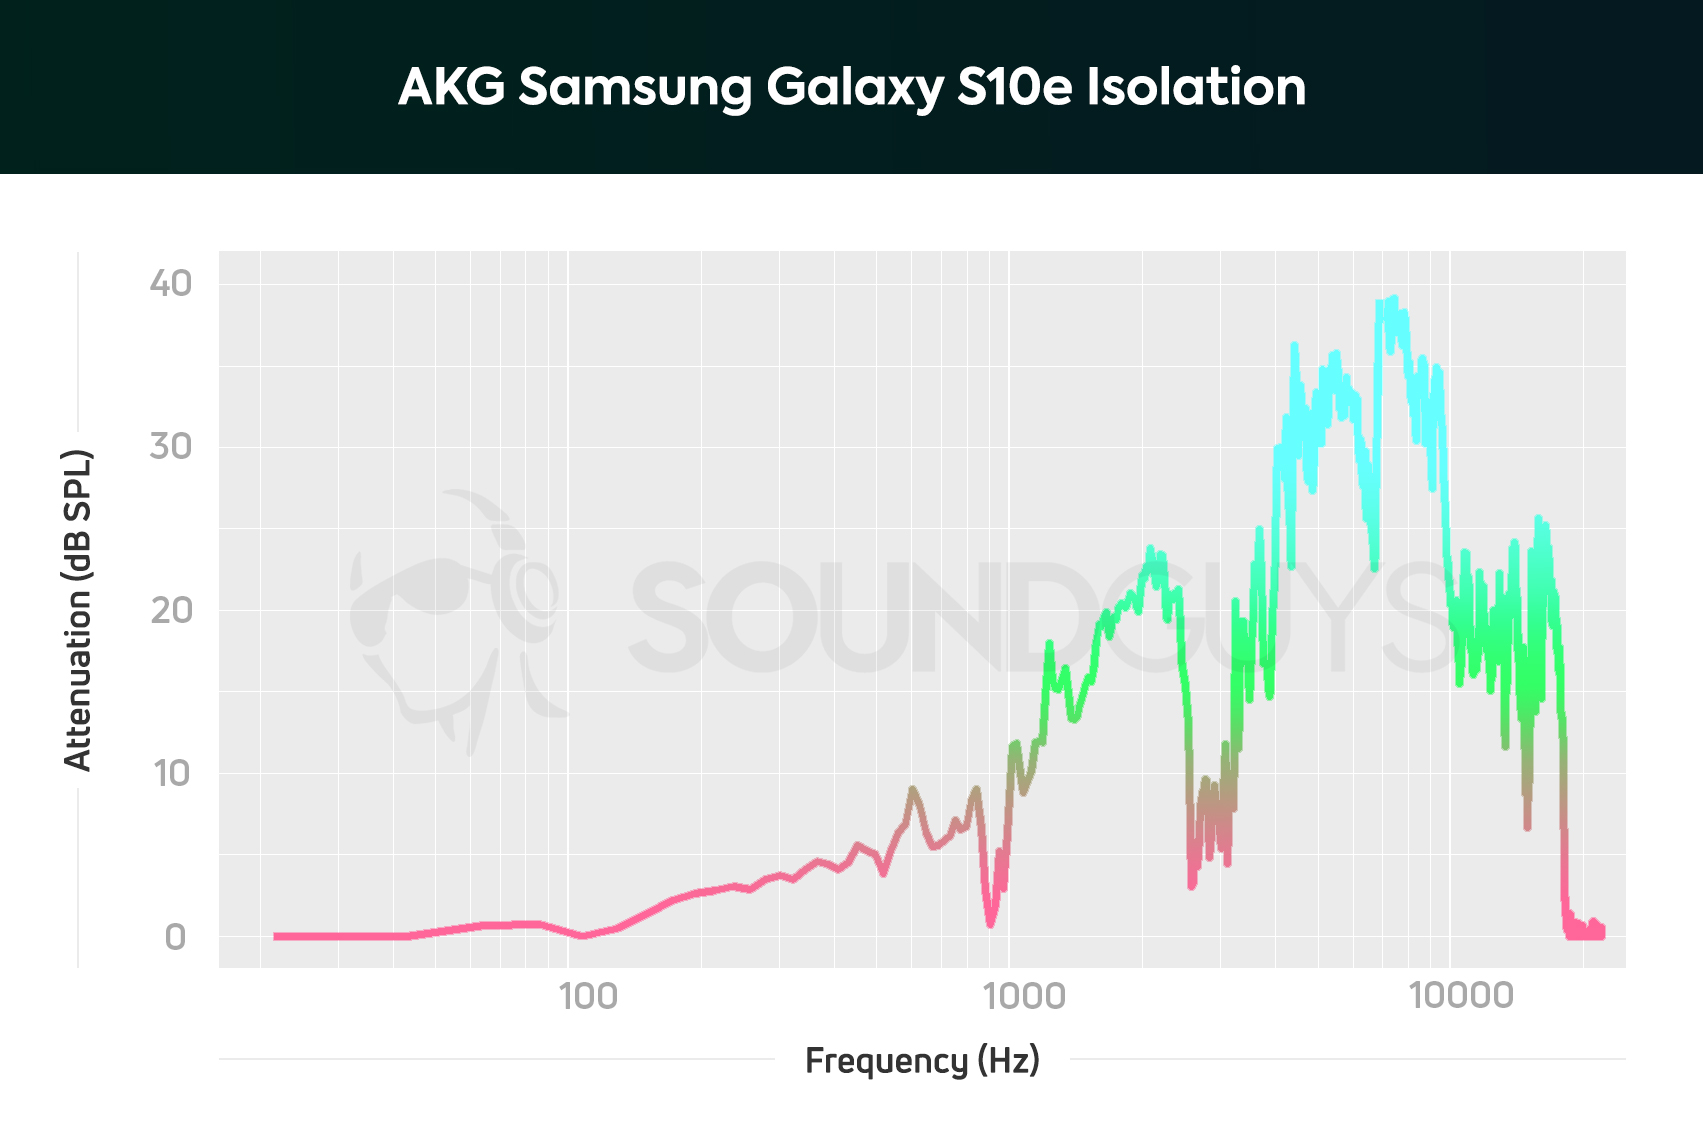 akg samsung galaxy s10e earbuds frequency isolation chart